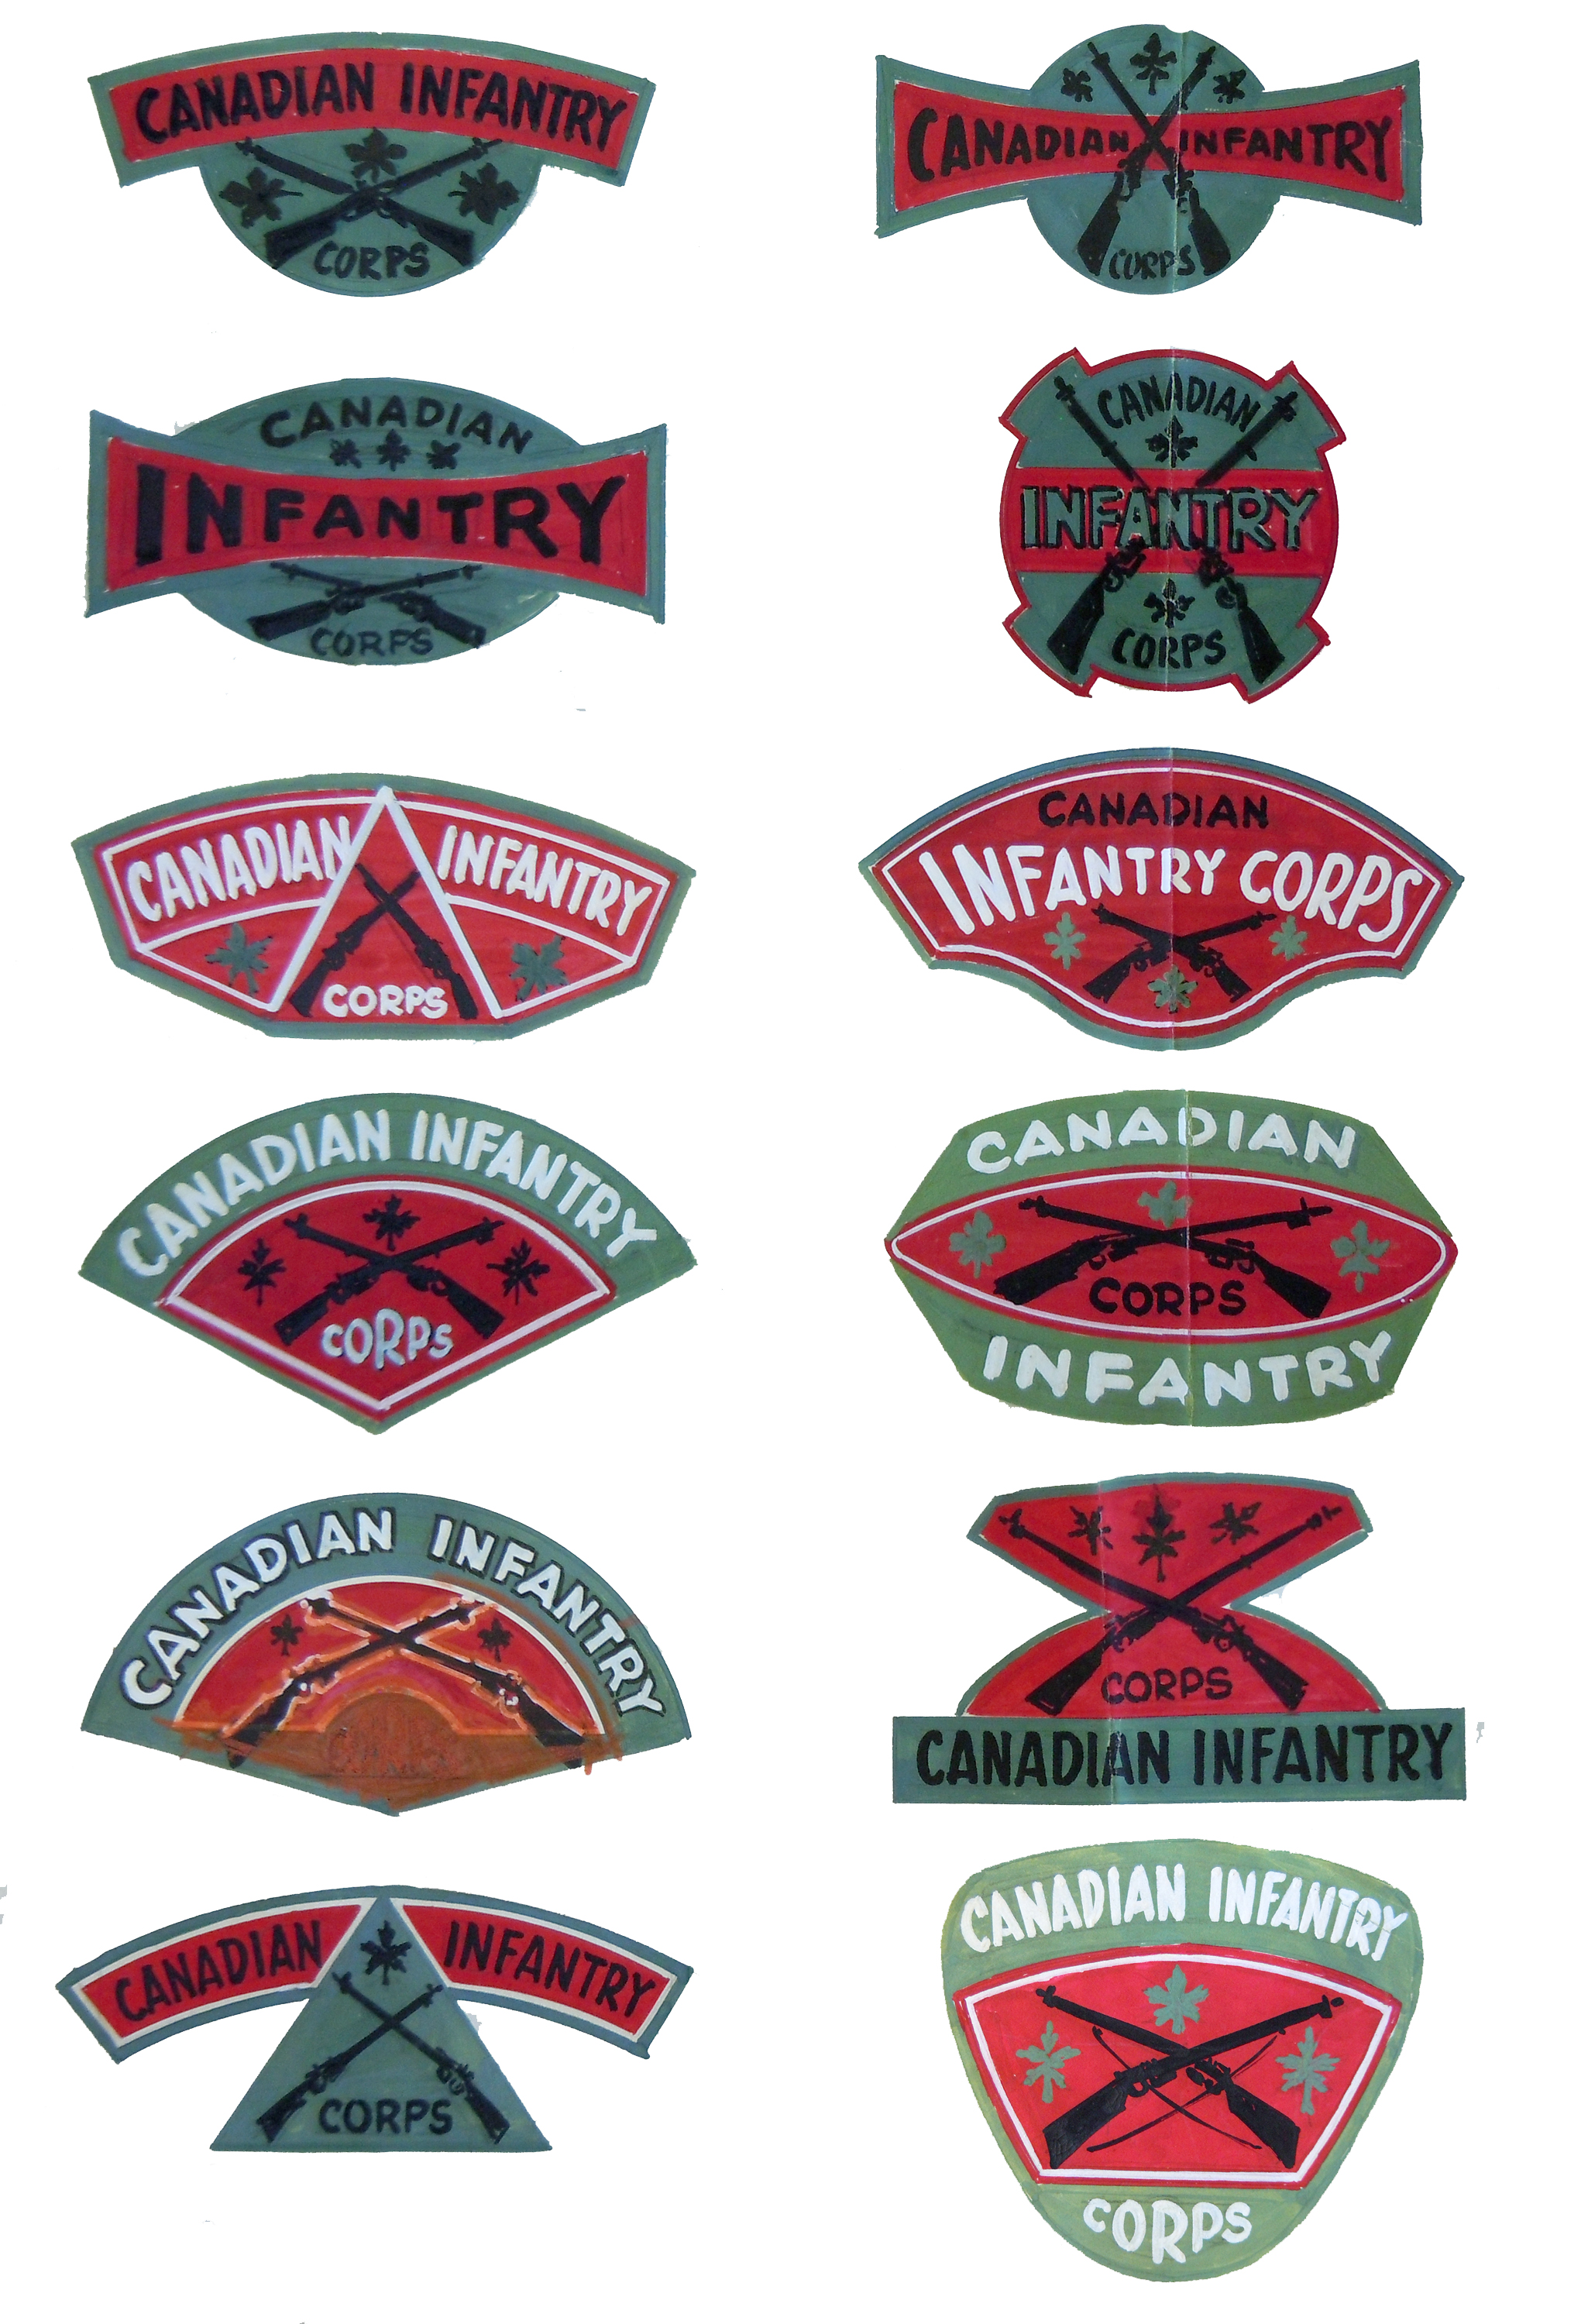 Comments | MilArt | Articles on Canadian Militaria | Page 17